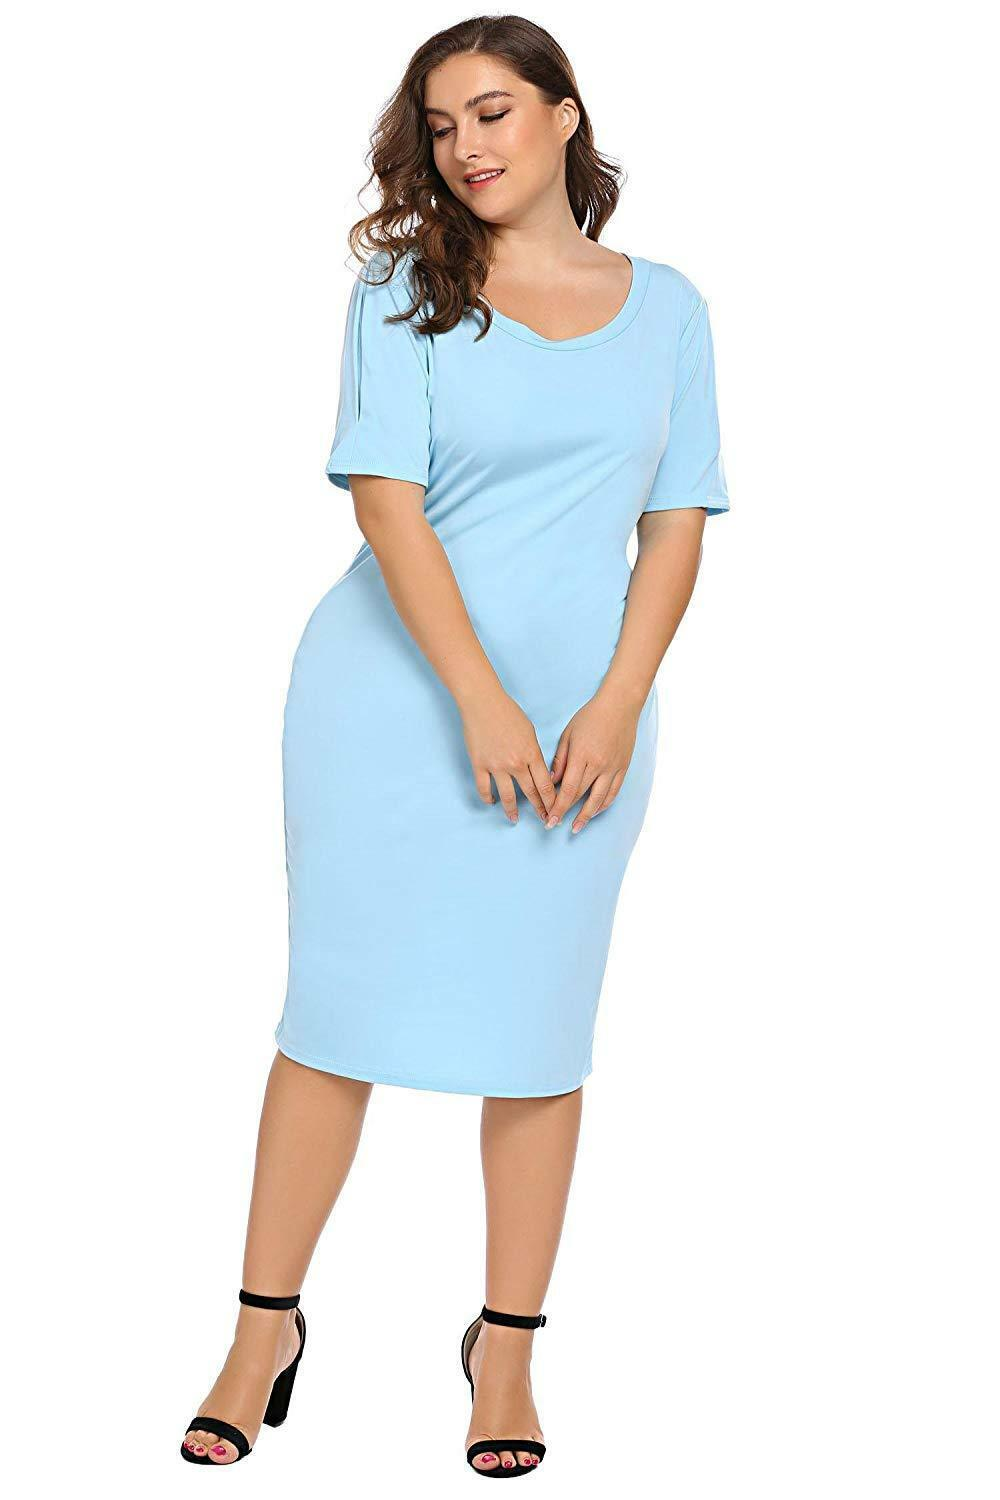 Zeagoo Women Plus Size Loose Fit Short Sleeve O-Neck Casual Midi Dress image 3